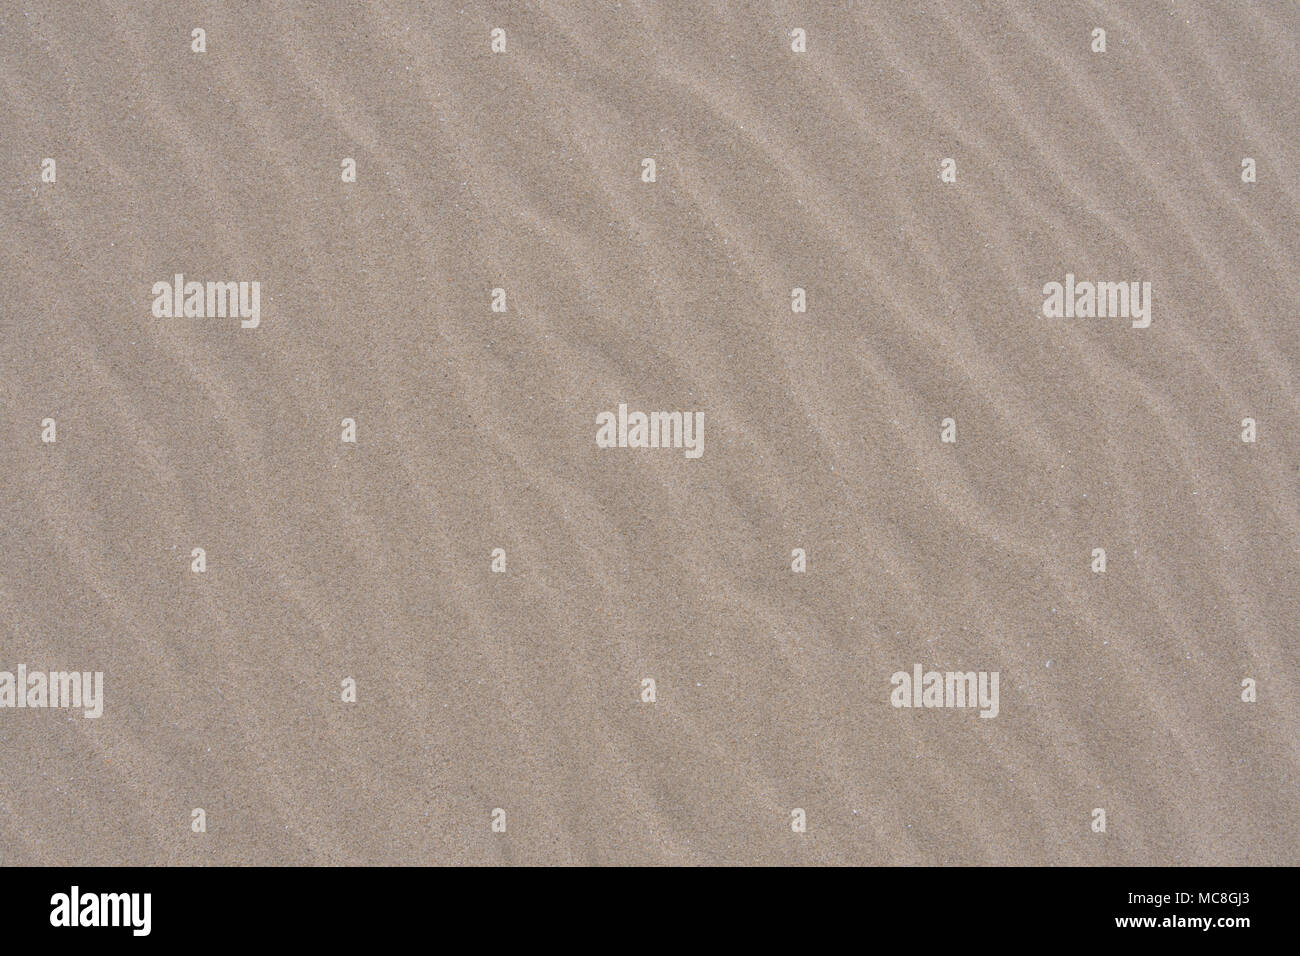 Soft Ripples in Sand Along Pacific Coast Beach Background Image - Stock Image